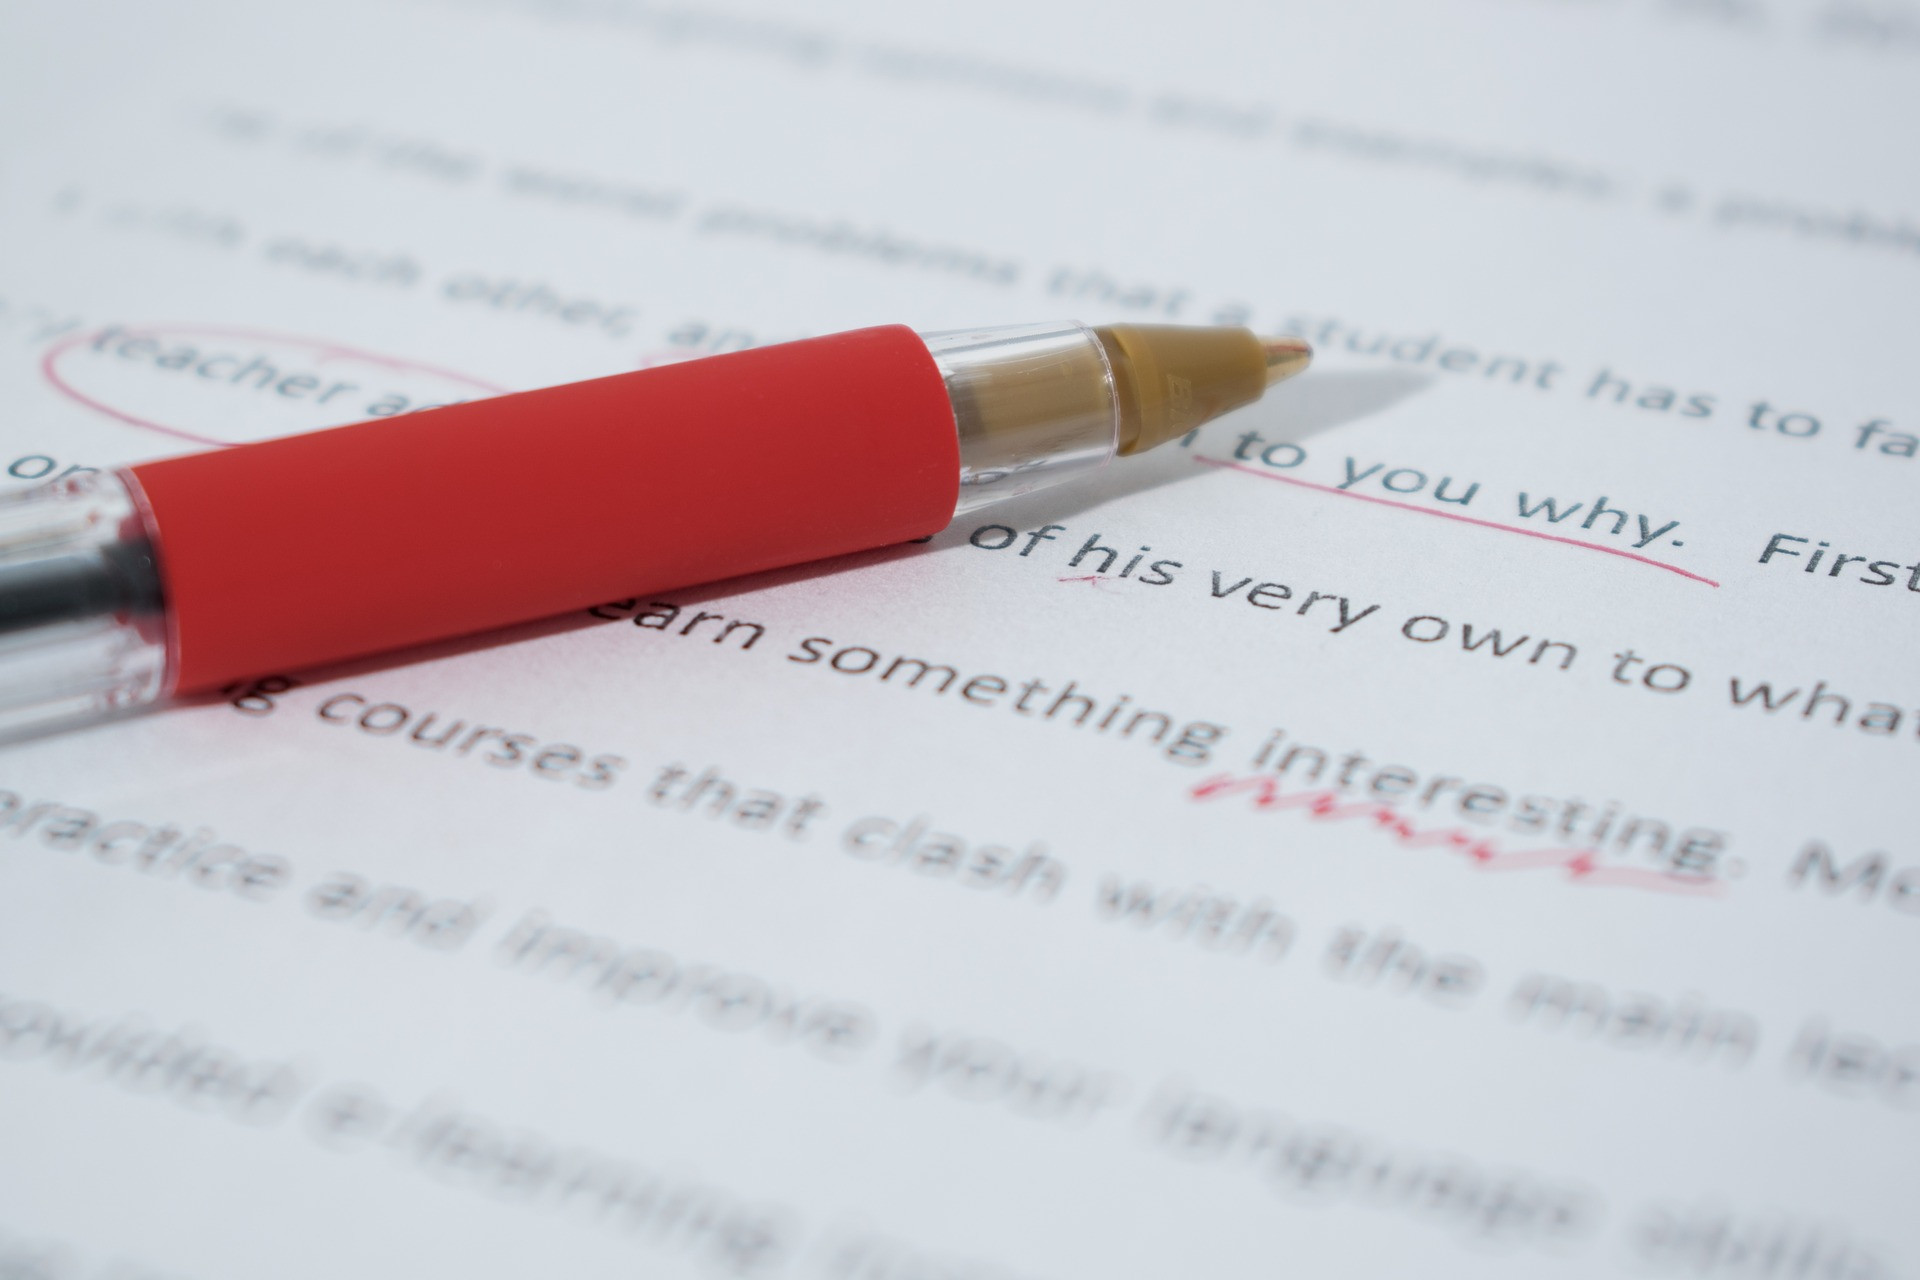 Line Editing/Proofreading